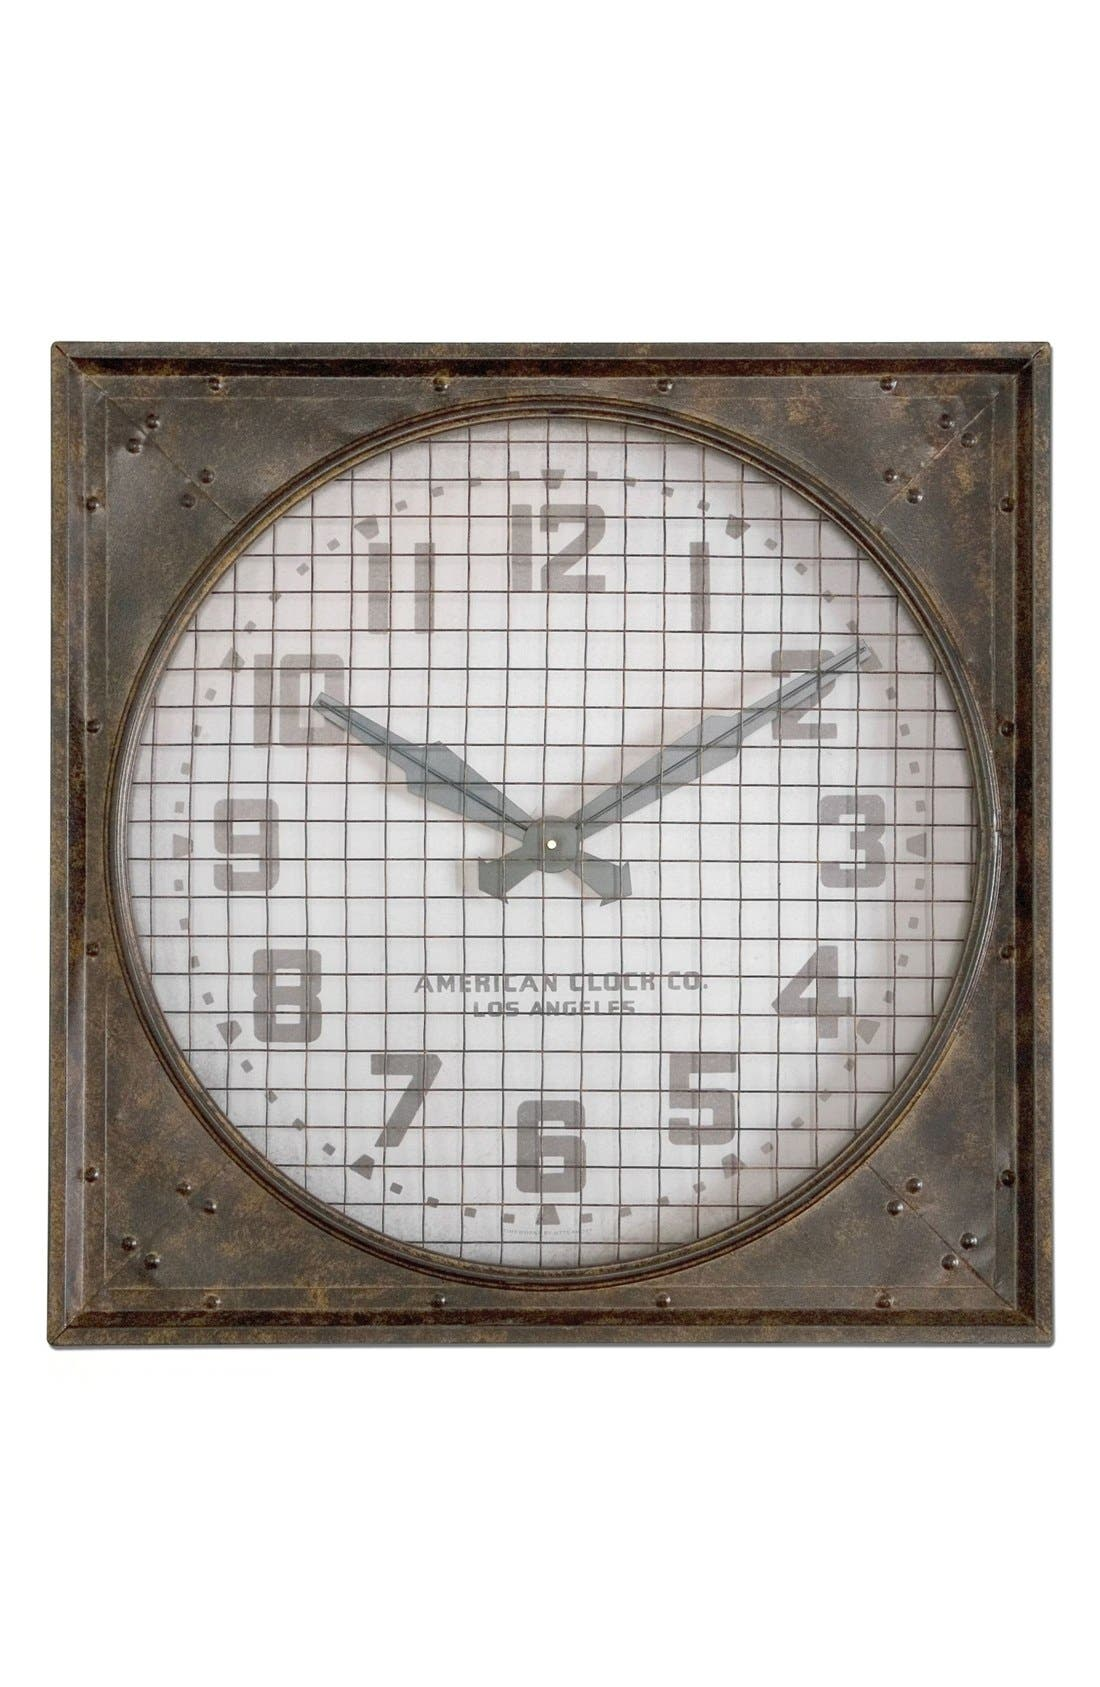 Main Image - Uttermost 'Warehouse' Wall Clock with Grill